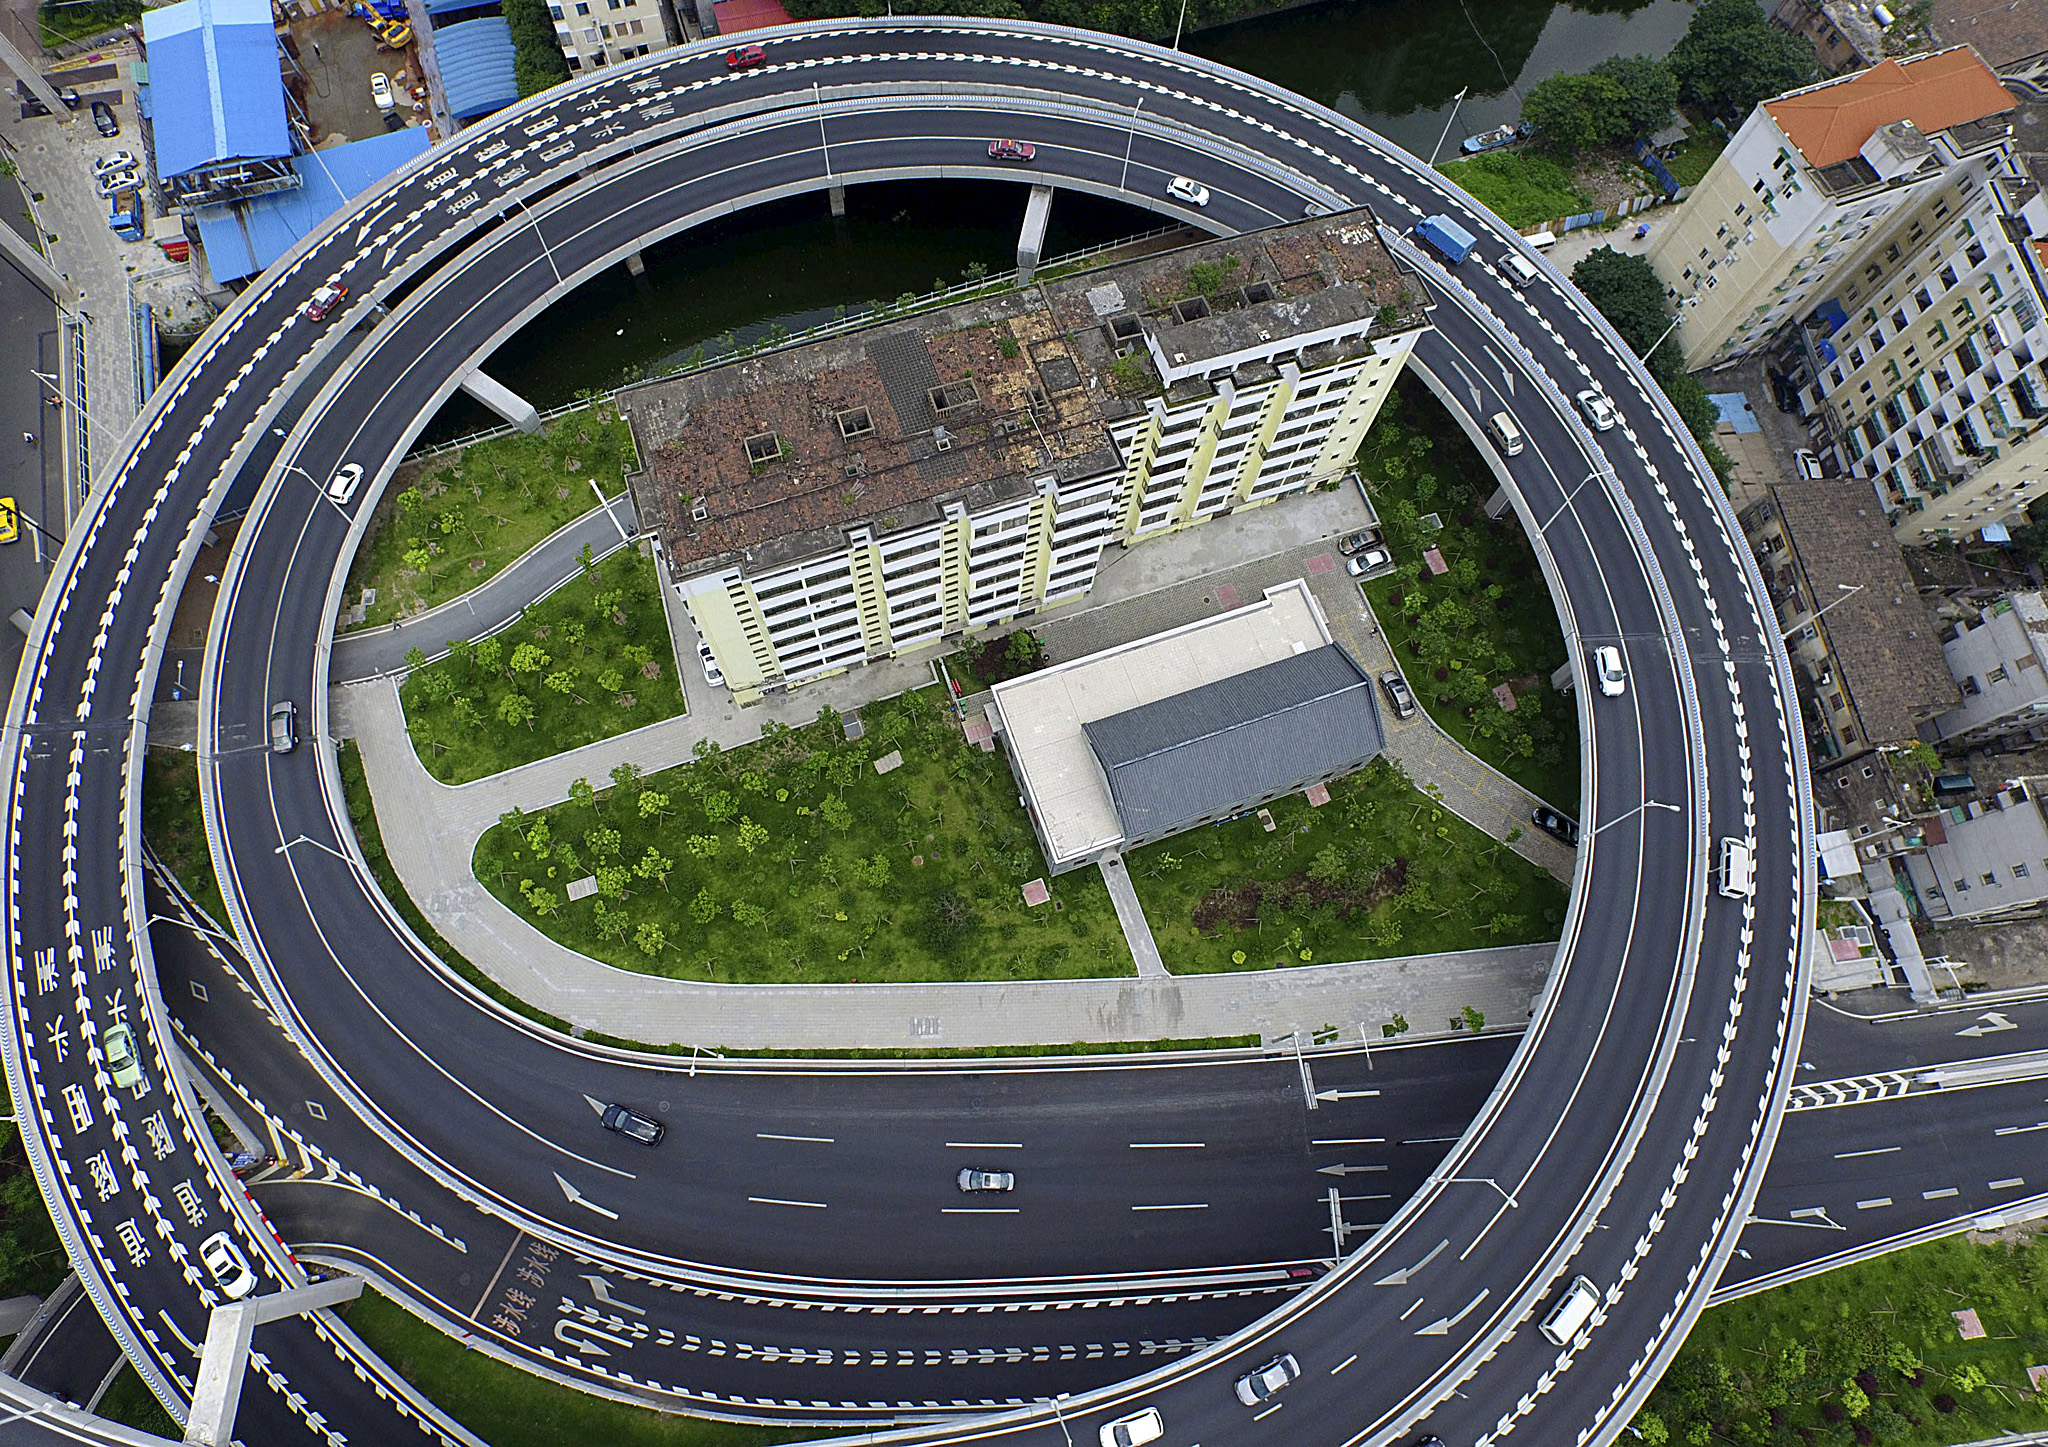 An old residential building is seen surrounded by a newly-built ring viaduct, in Guangzhou...An old residential building is seen surrounded by a newly-built ring viaduct, in Guangzhou, Guangdong province, China, June 18, 2015. The building was planned to be demolished, but several units in the building refused to move out as they couldn't reach a compensation agreement with the authority, local media reported. Picture taken June 18, 2015. REUTERS/Ma Qiang/Southern Metropolis Daily CHINA OUT. NO COMMERCIAL OR EDITORIAL SALES IN CHINA           TPX IMAGES OF THE DAY